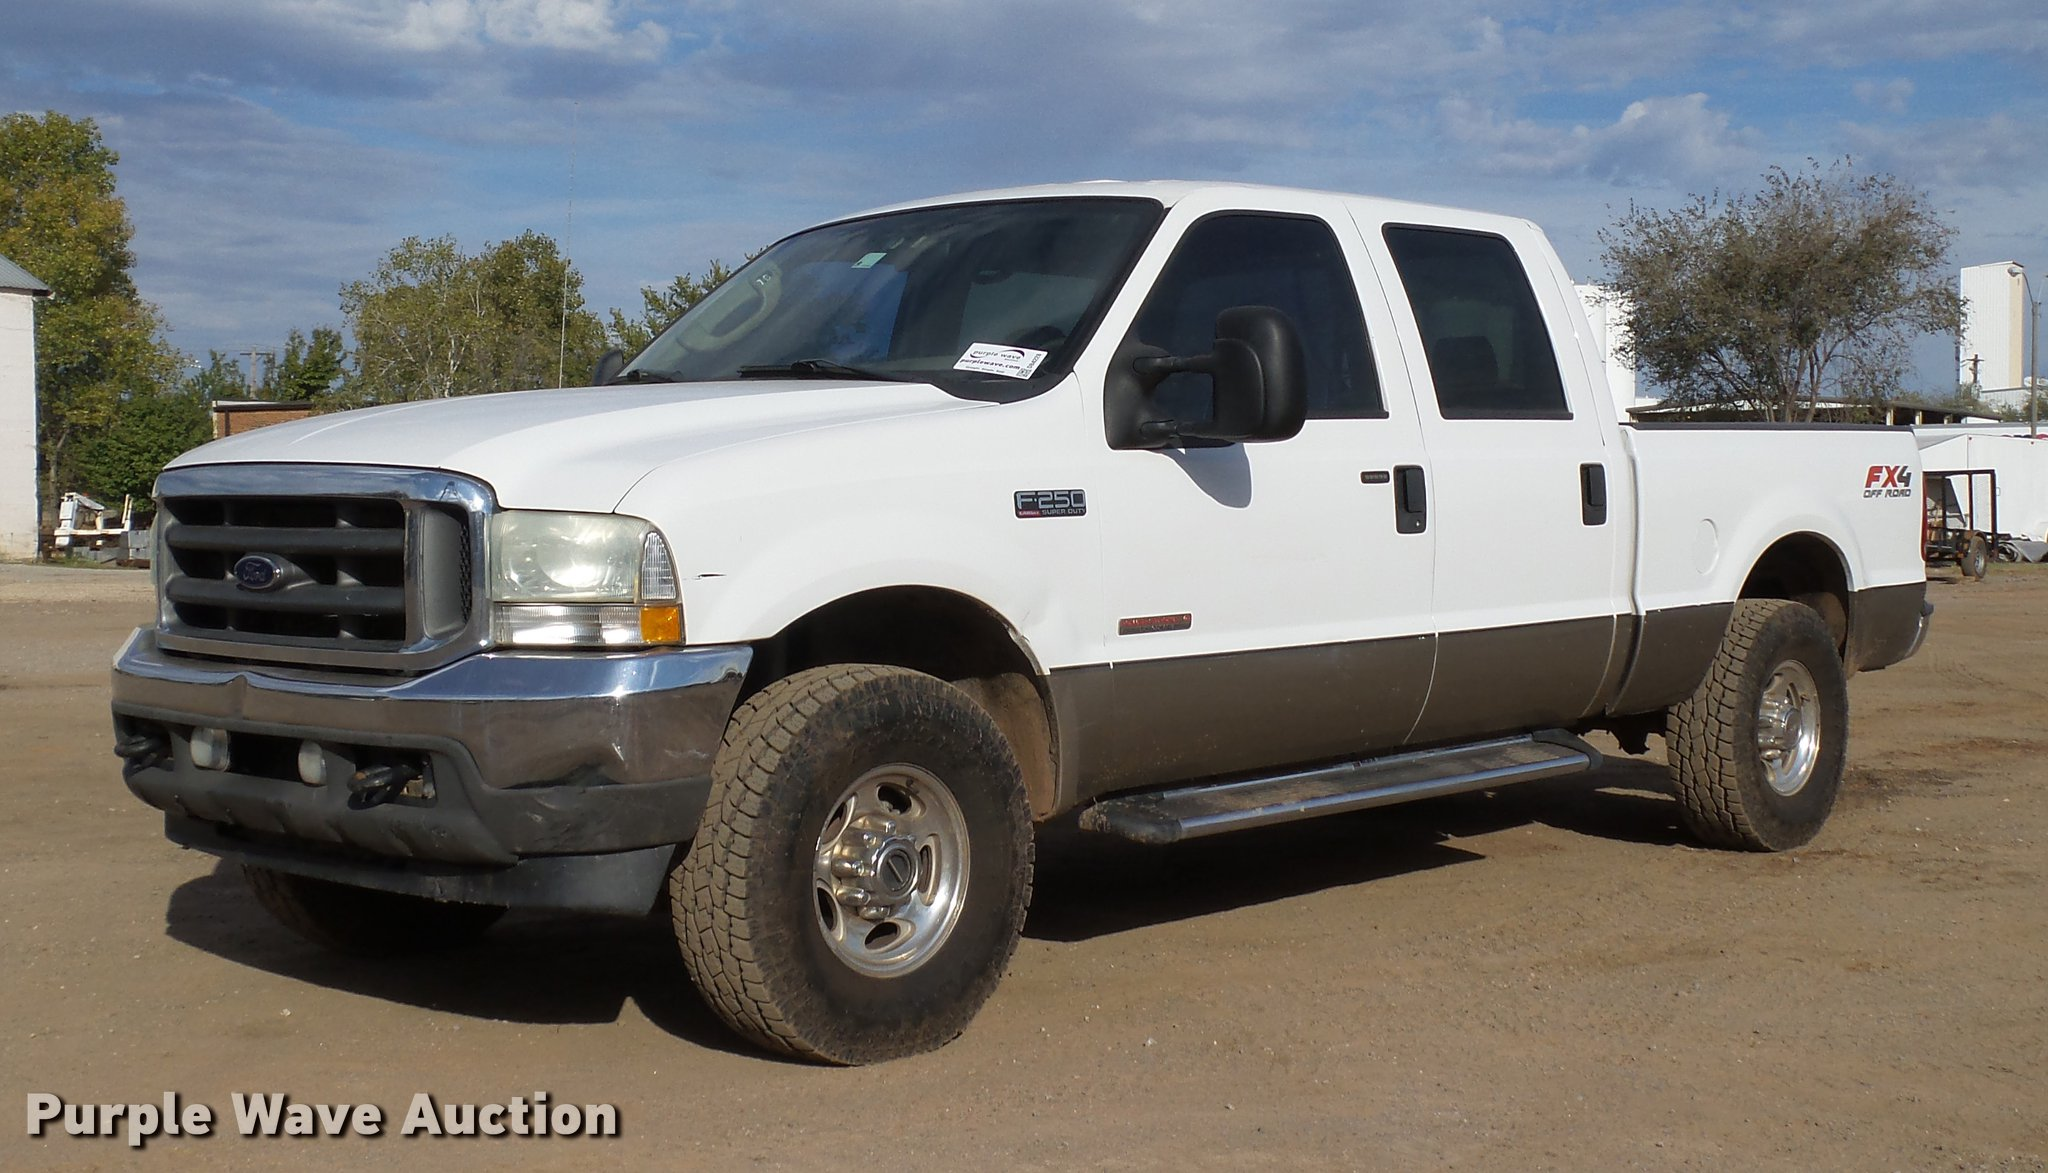 2004 Ford F250 Super Duty Lariat Crew Cab Pickup Truck Ite F 250 Db4228 Image For Item